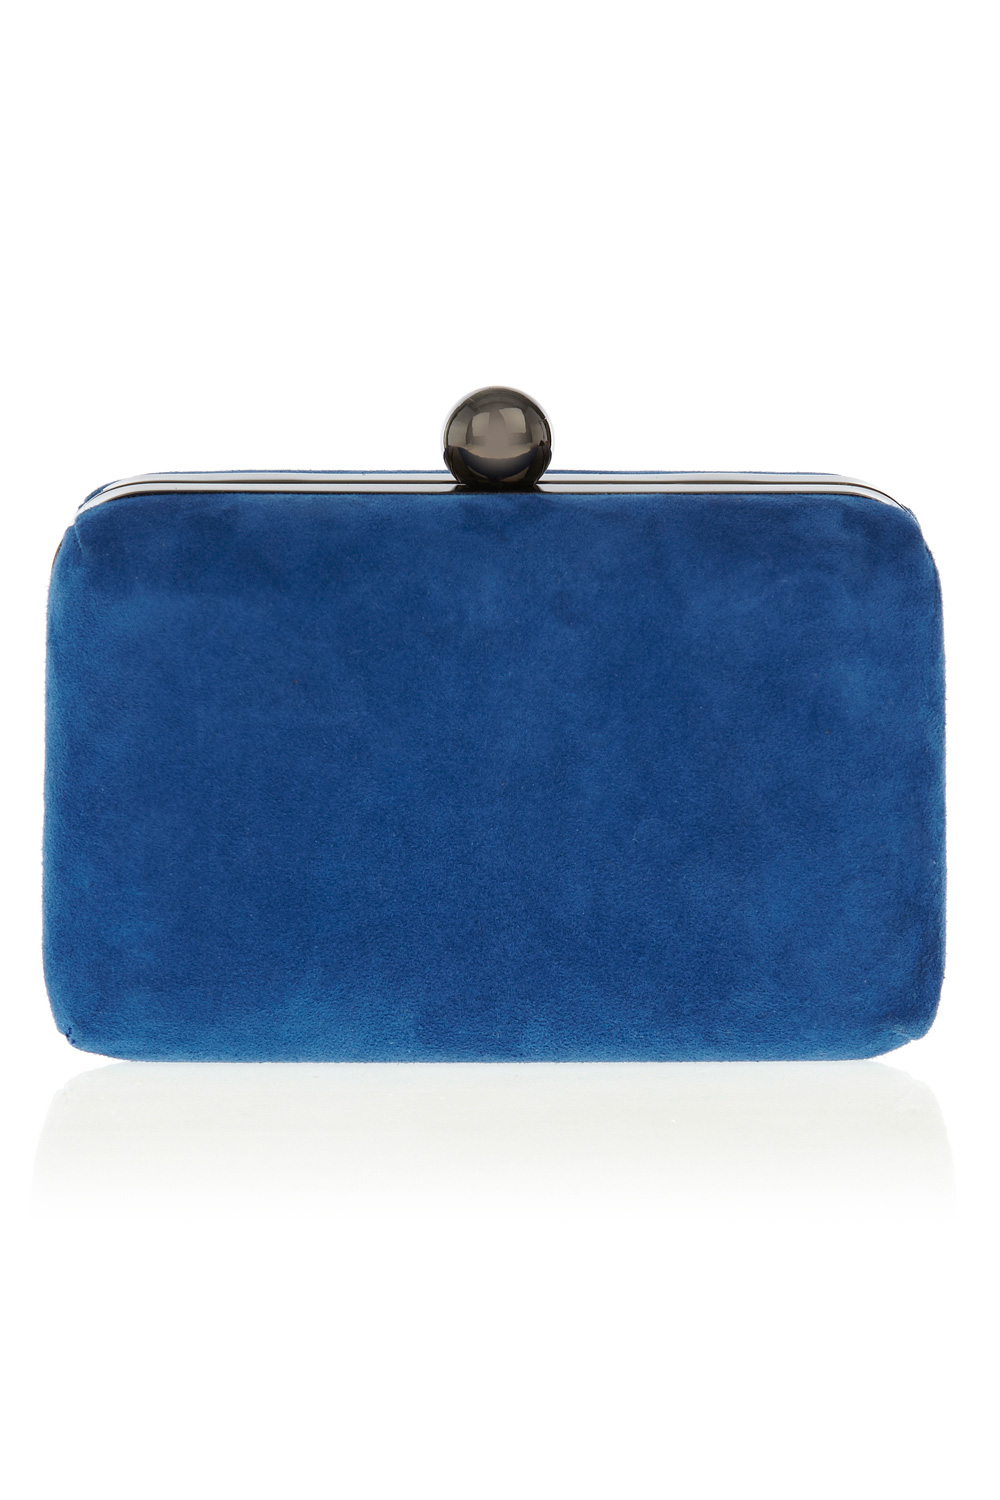 Coast Suede Box Bag in Blue (cobalt blue)